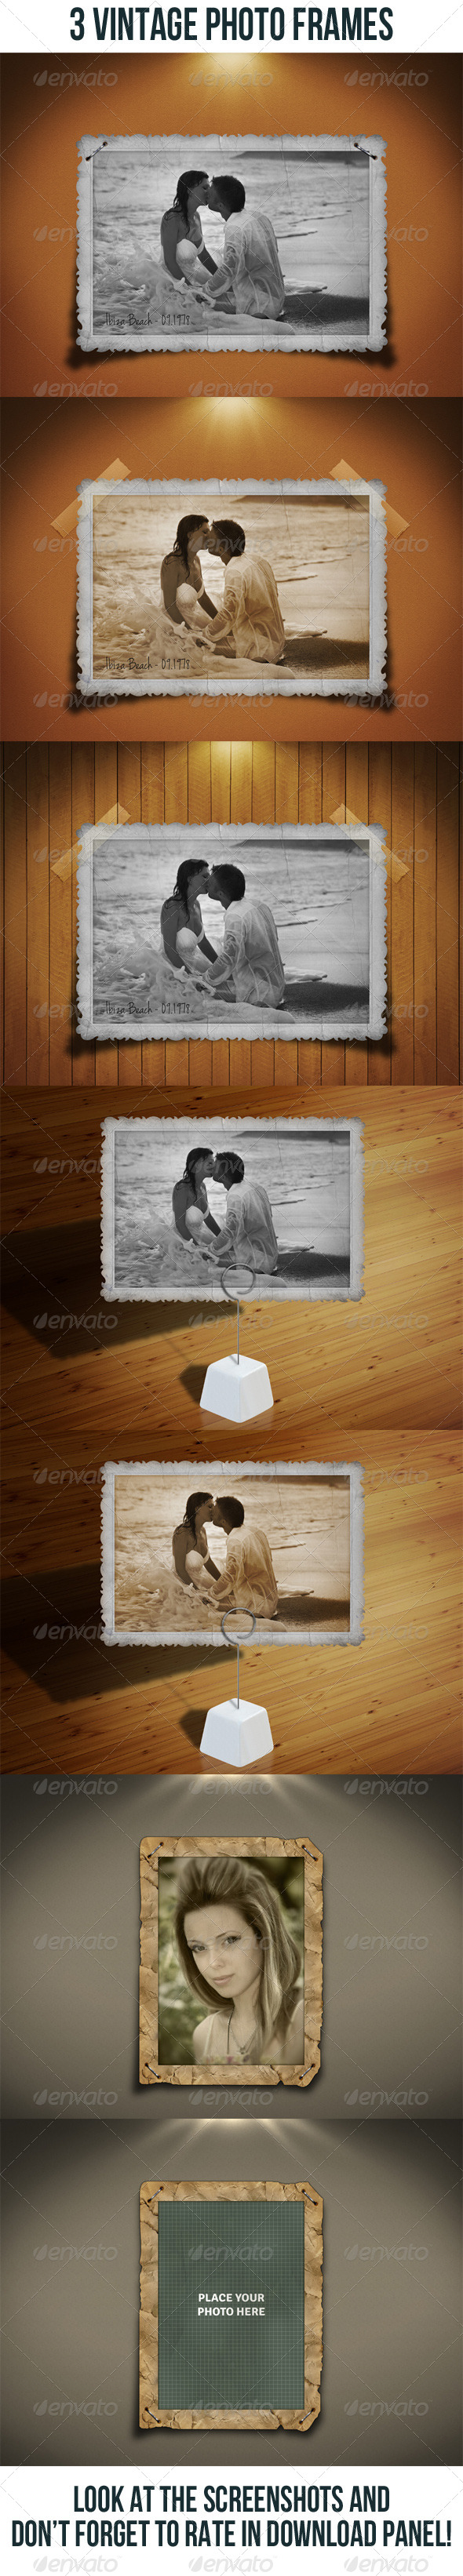 3 Vintage Photo Frames Bundle - Artistic Photo Templates